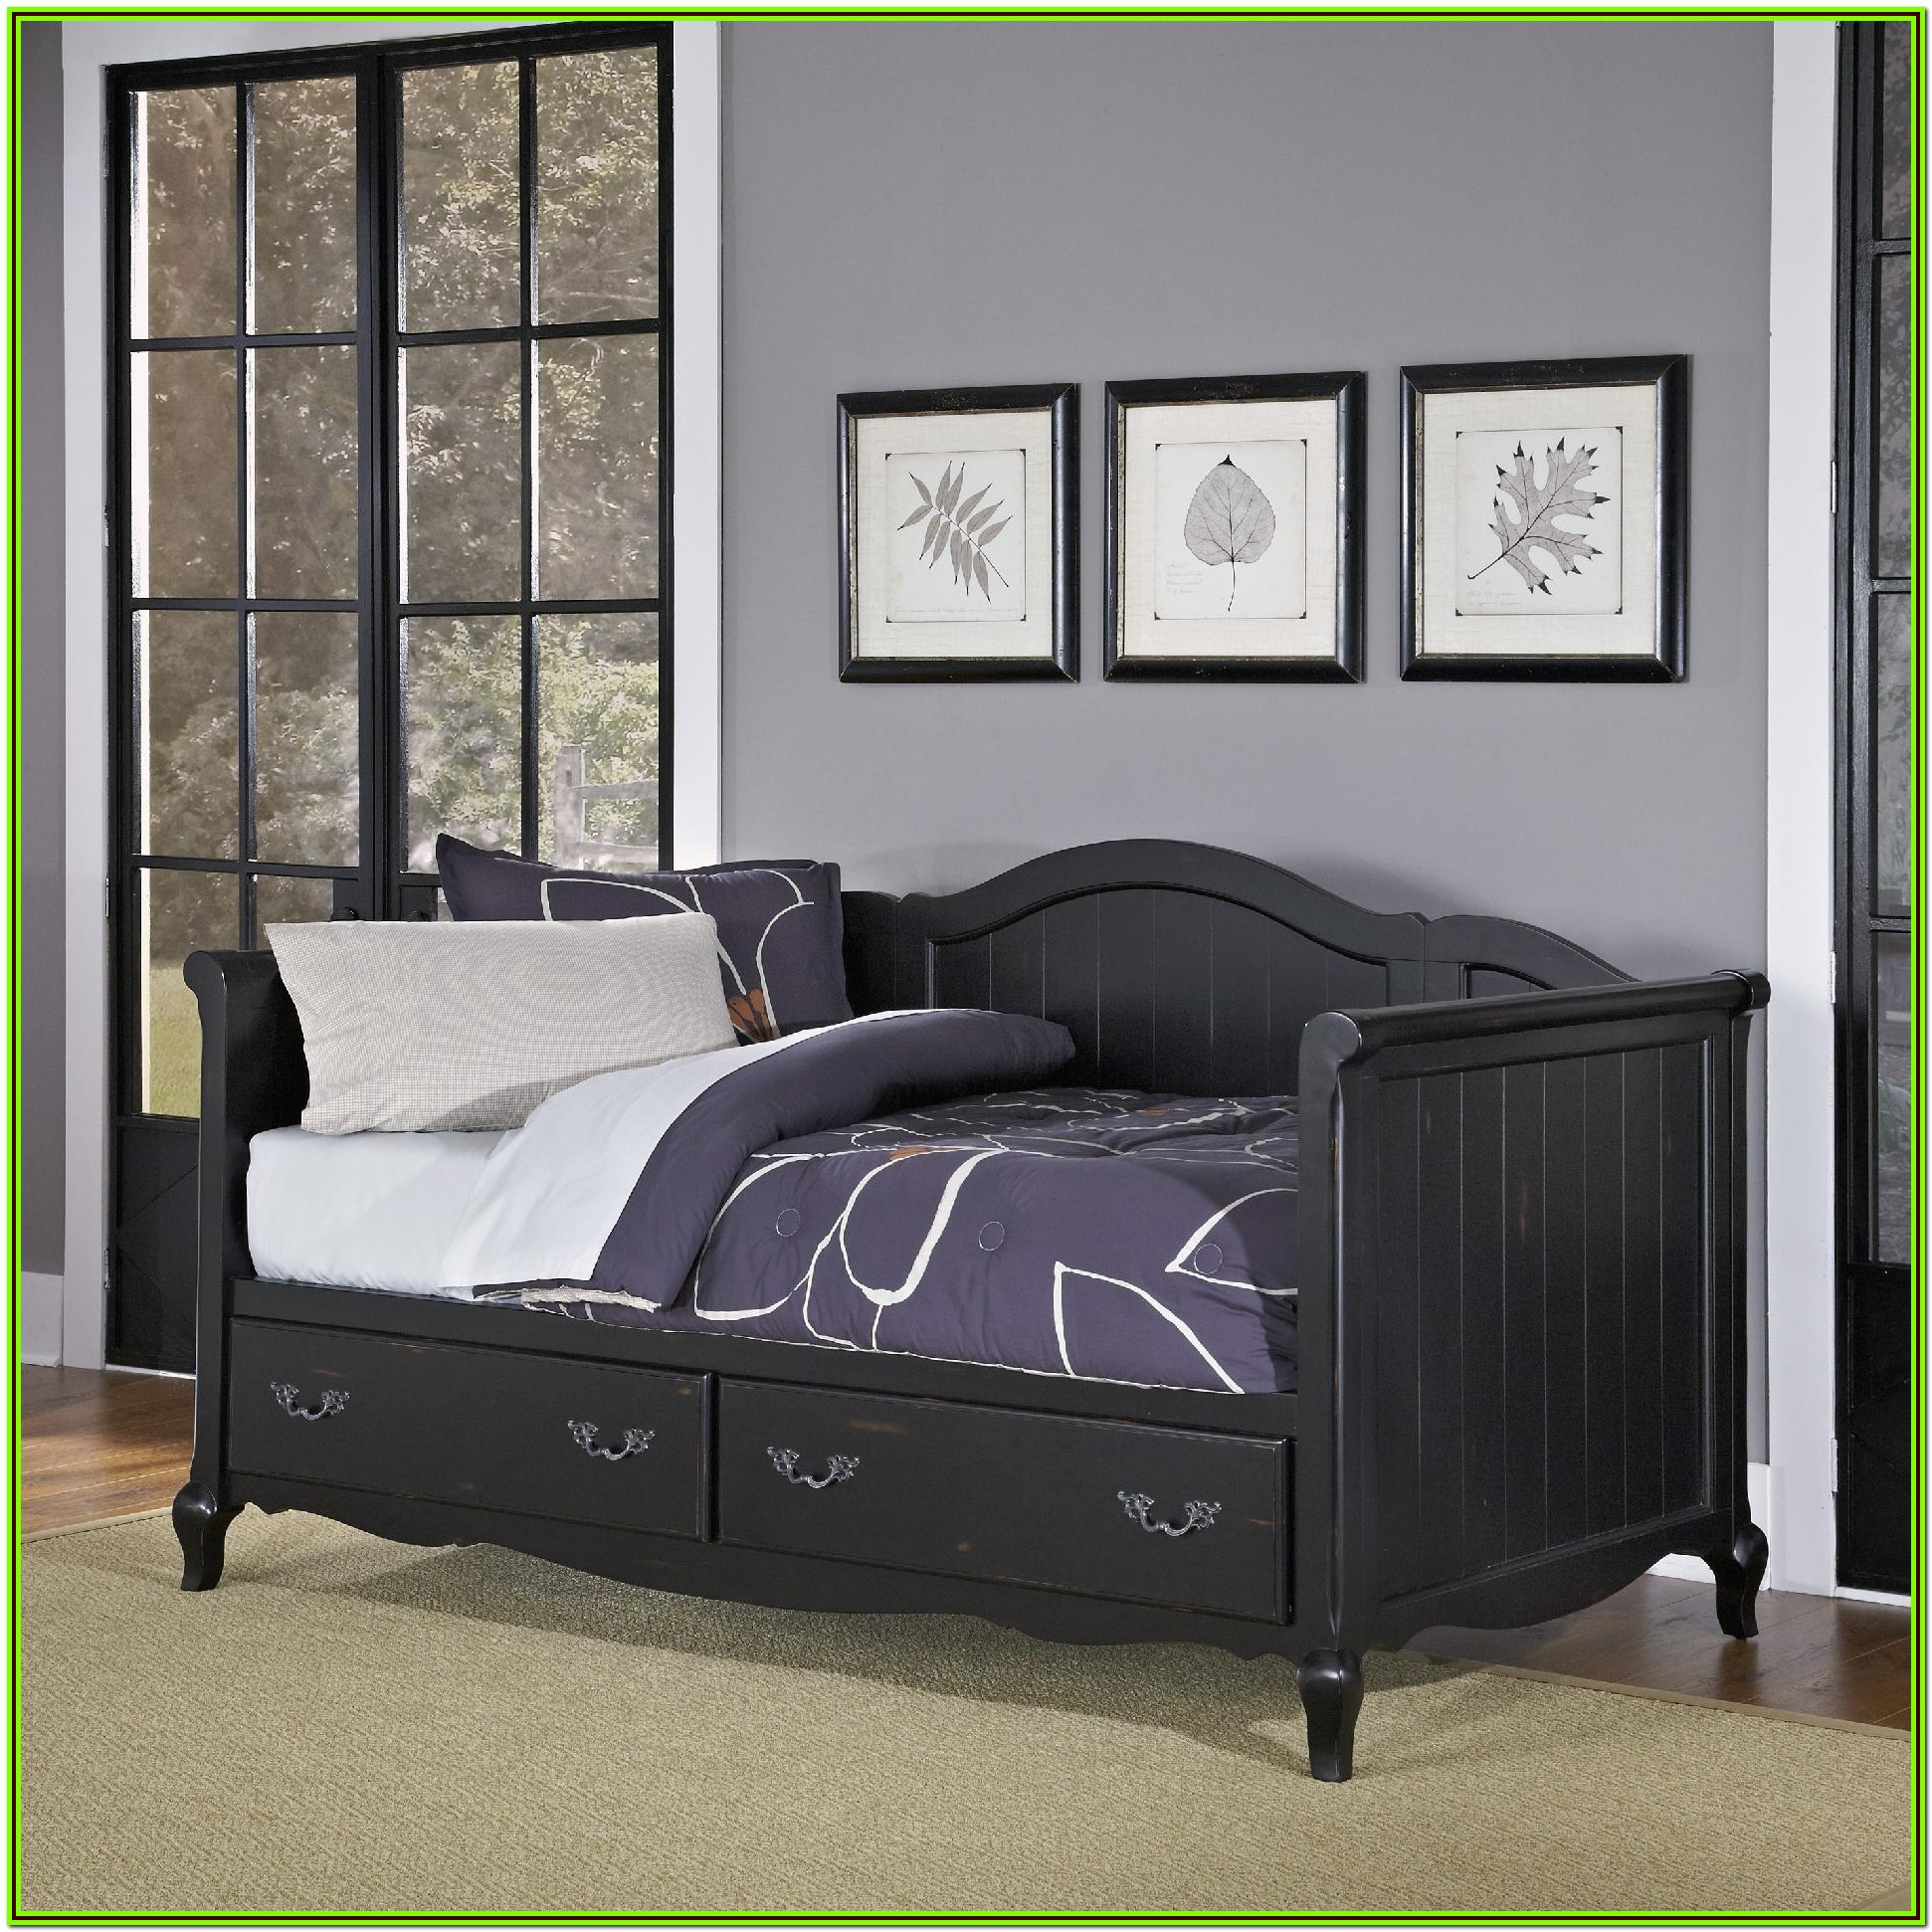 Trundle Beds For Adults Walmart